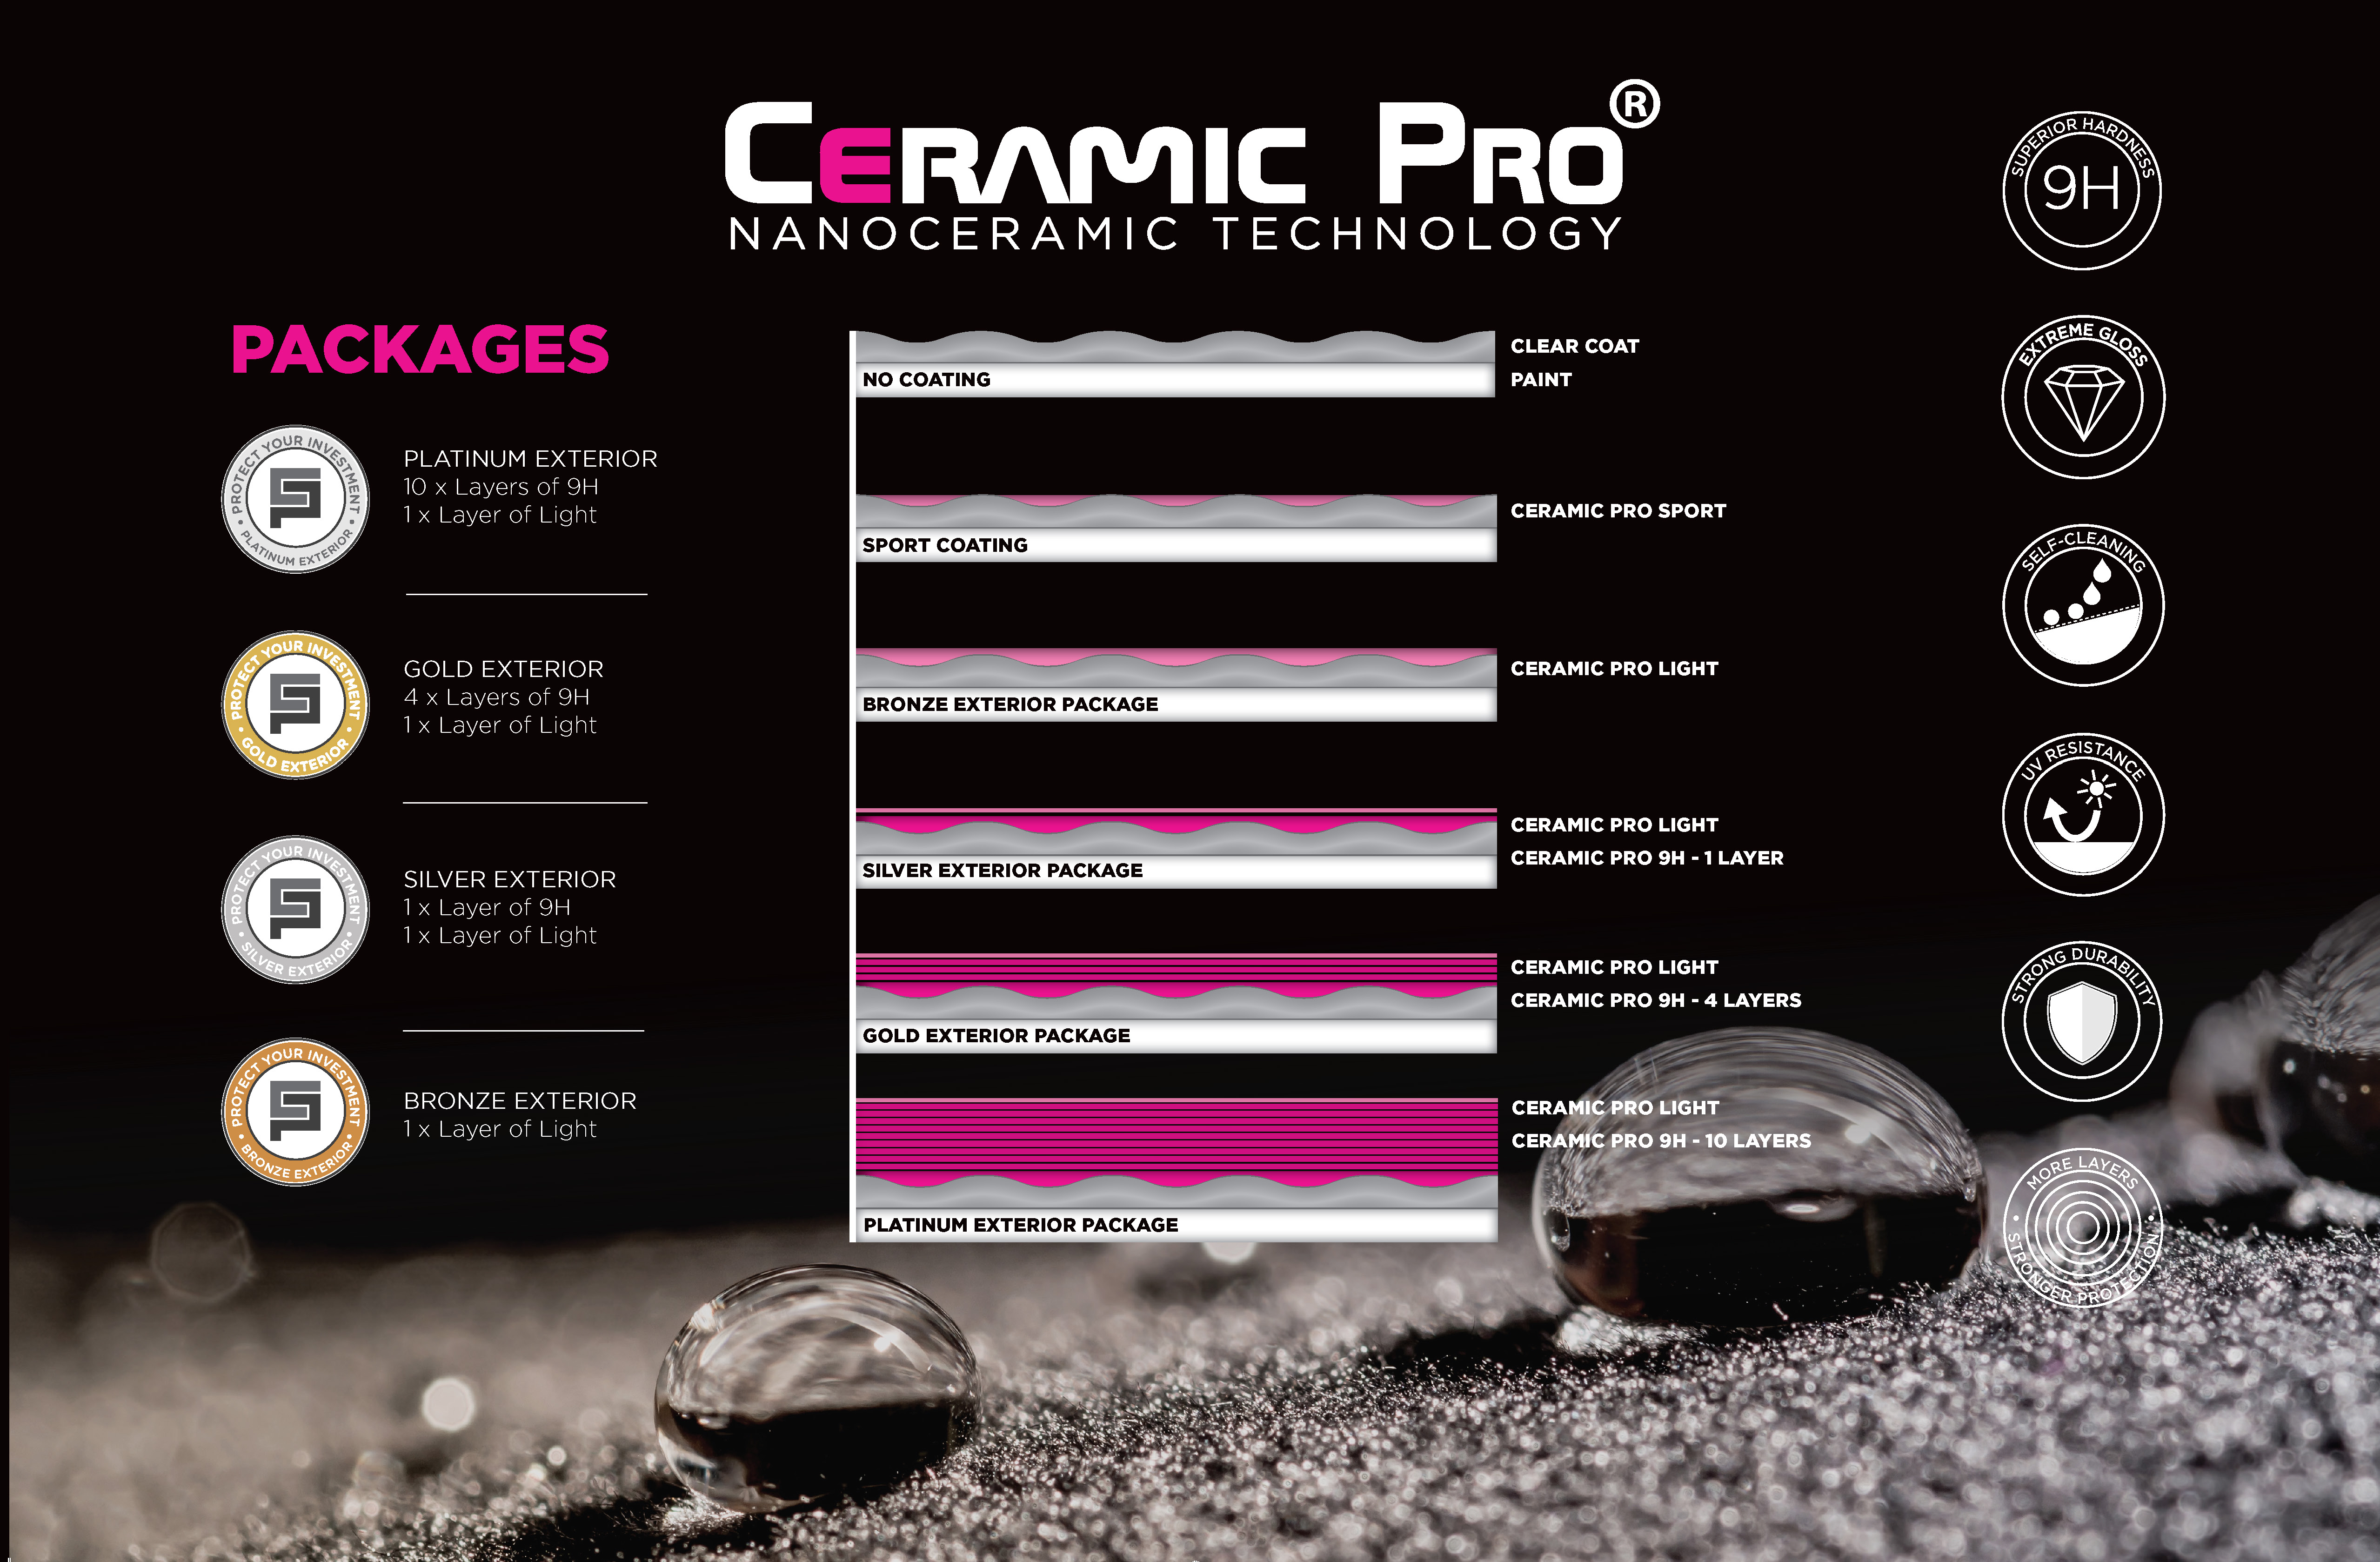 Ceramic Pro Packages